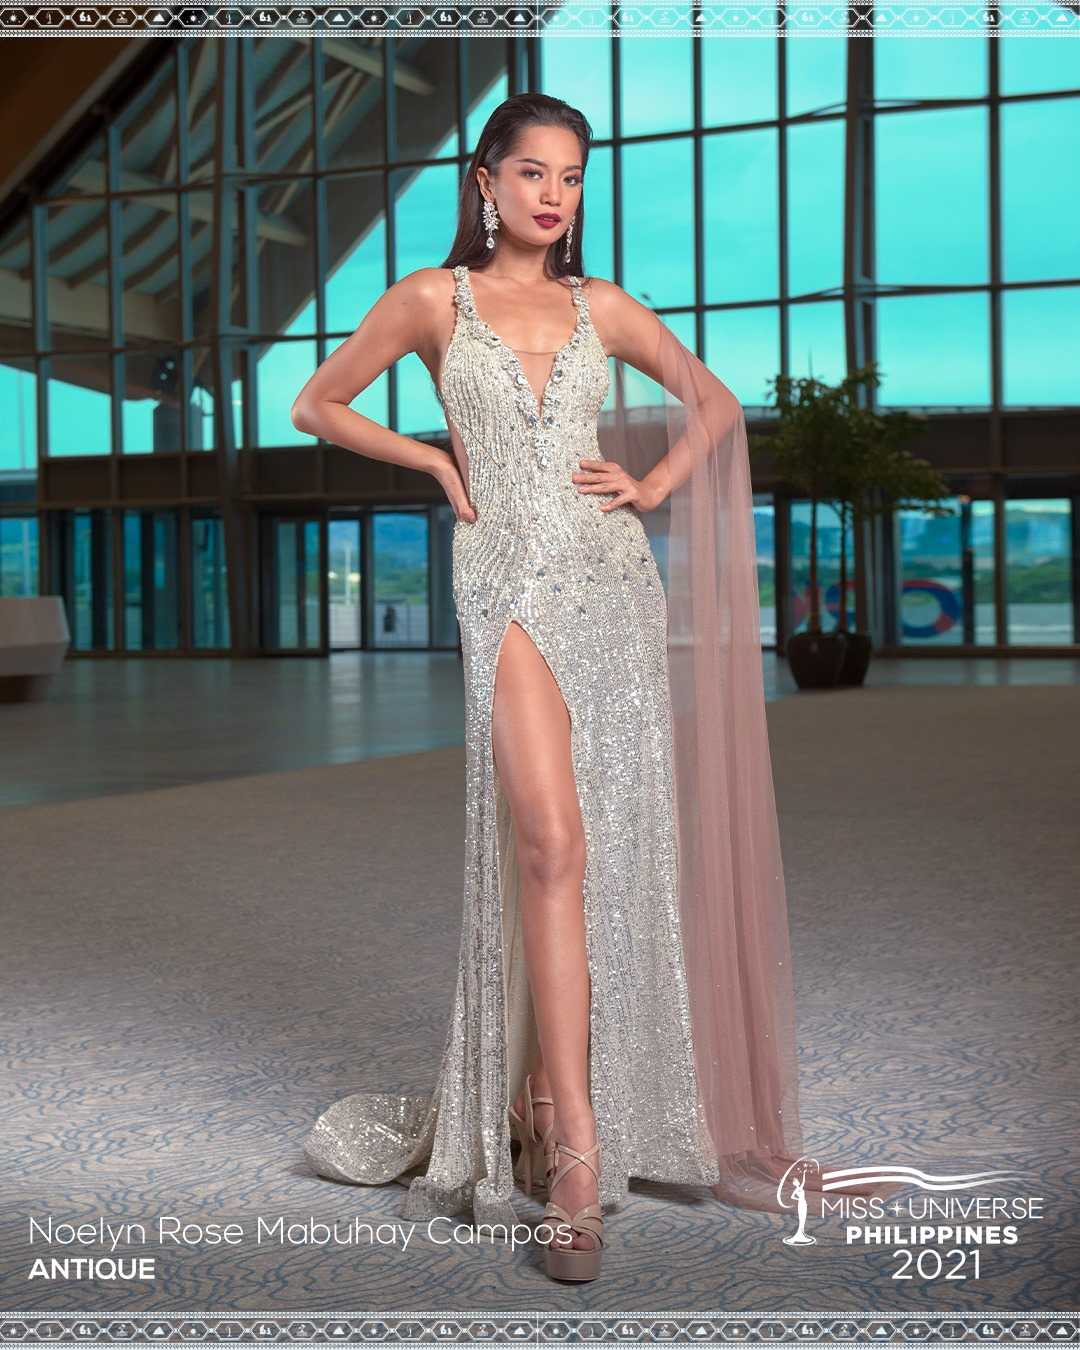 miss-universe-2021-noelyn-rose-mabuhay-campos-evening-gown